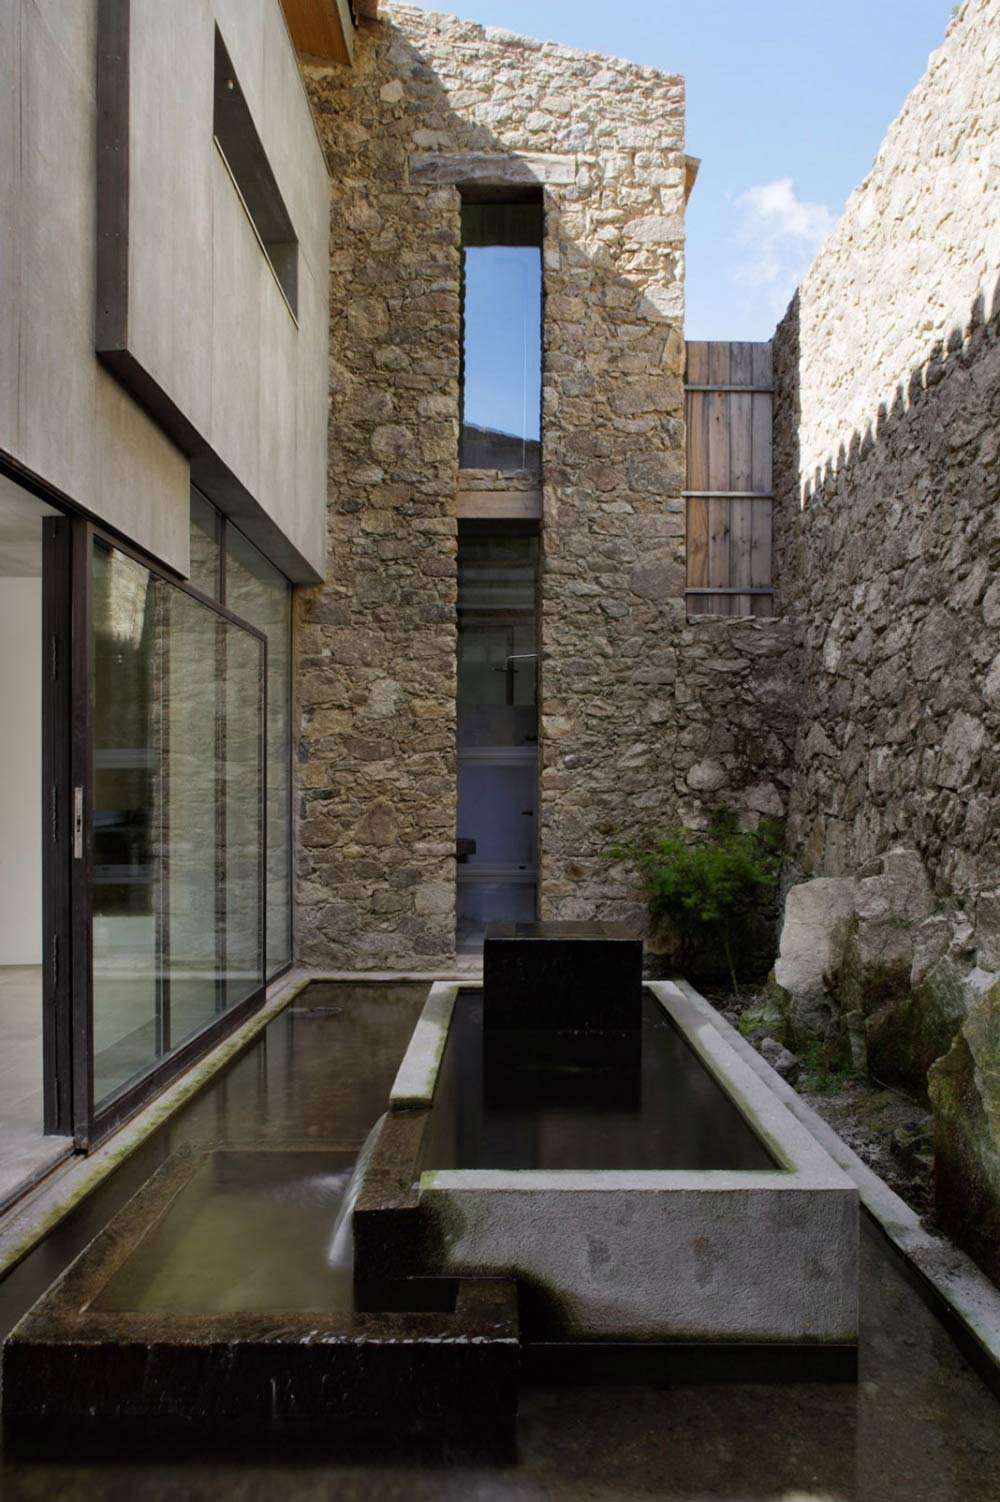 Water Feature, Finca en Extremadura in Cáceres, Spain by ÁBATON